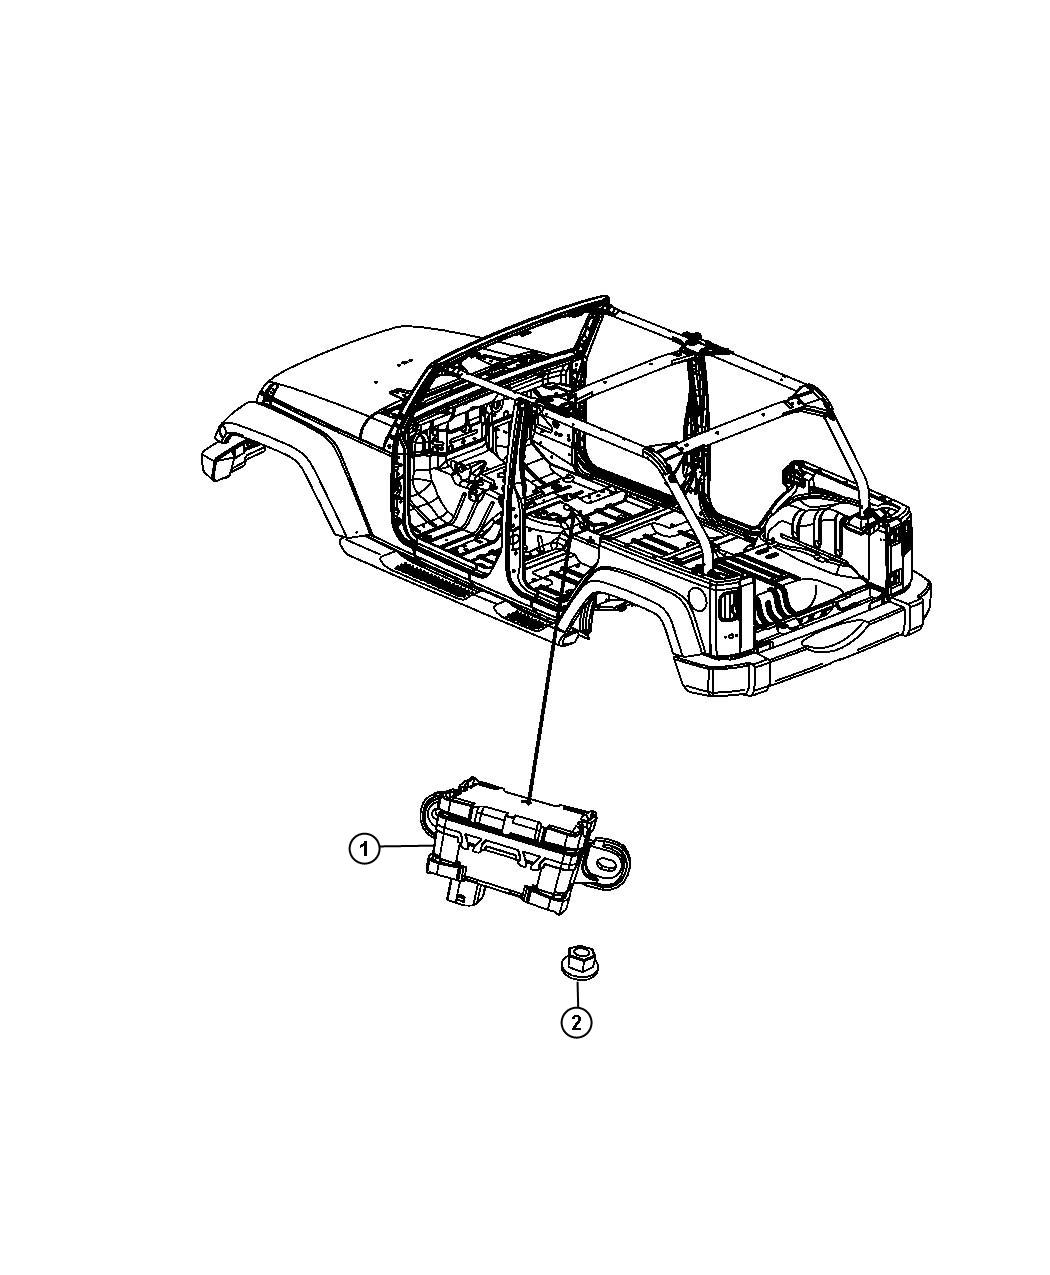 Jeep Wrangler Sensor Dynamics Lateral Acceleration And